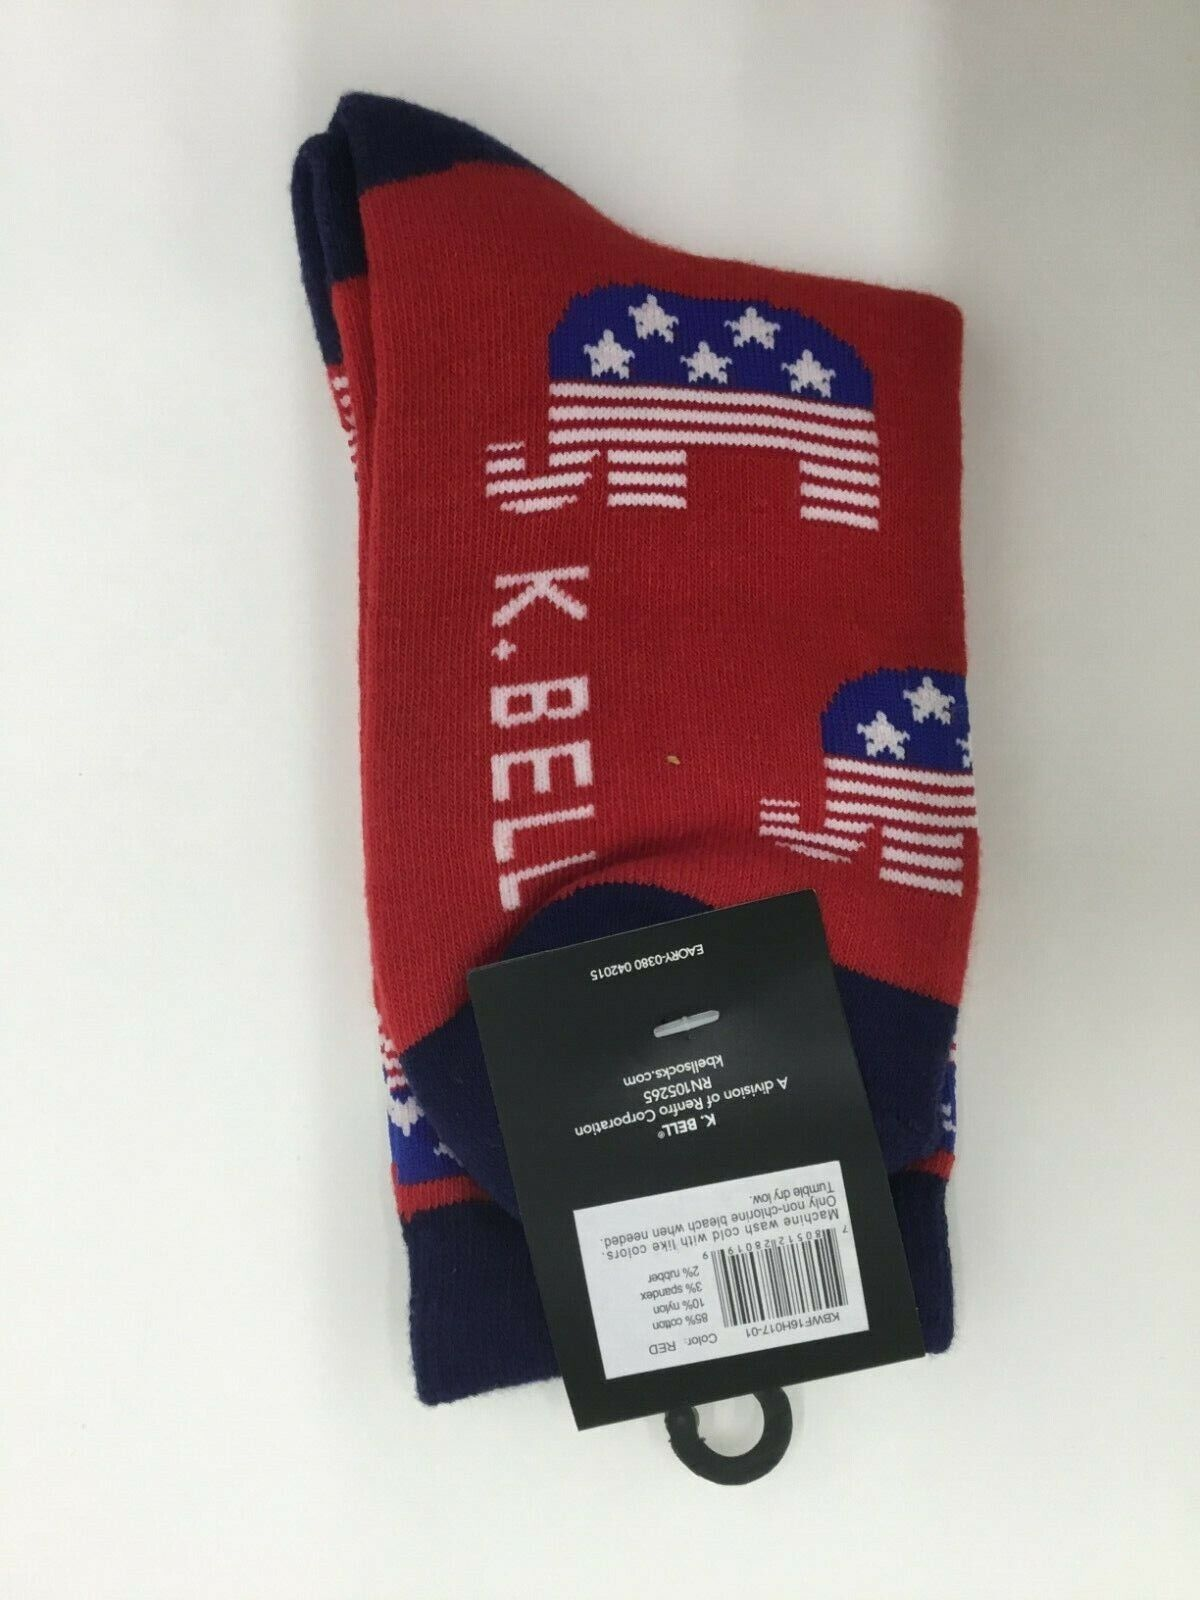 ONE PAIR  K.BELL MADE IN USA NEW CREW SOCKS WOMEN/BOYS SIZE 9-11 4TH OF JULY USA Clothing, Shoes & Accessories